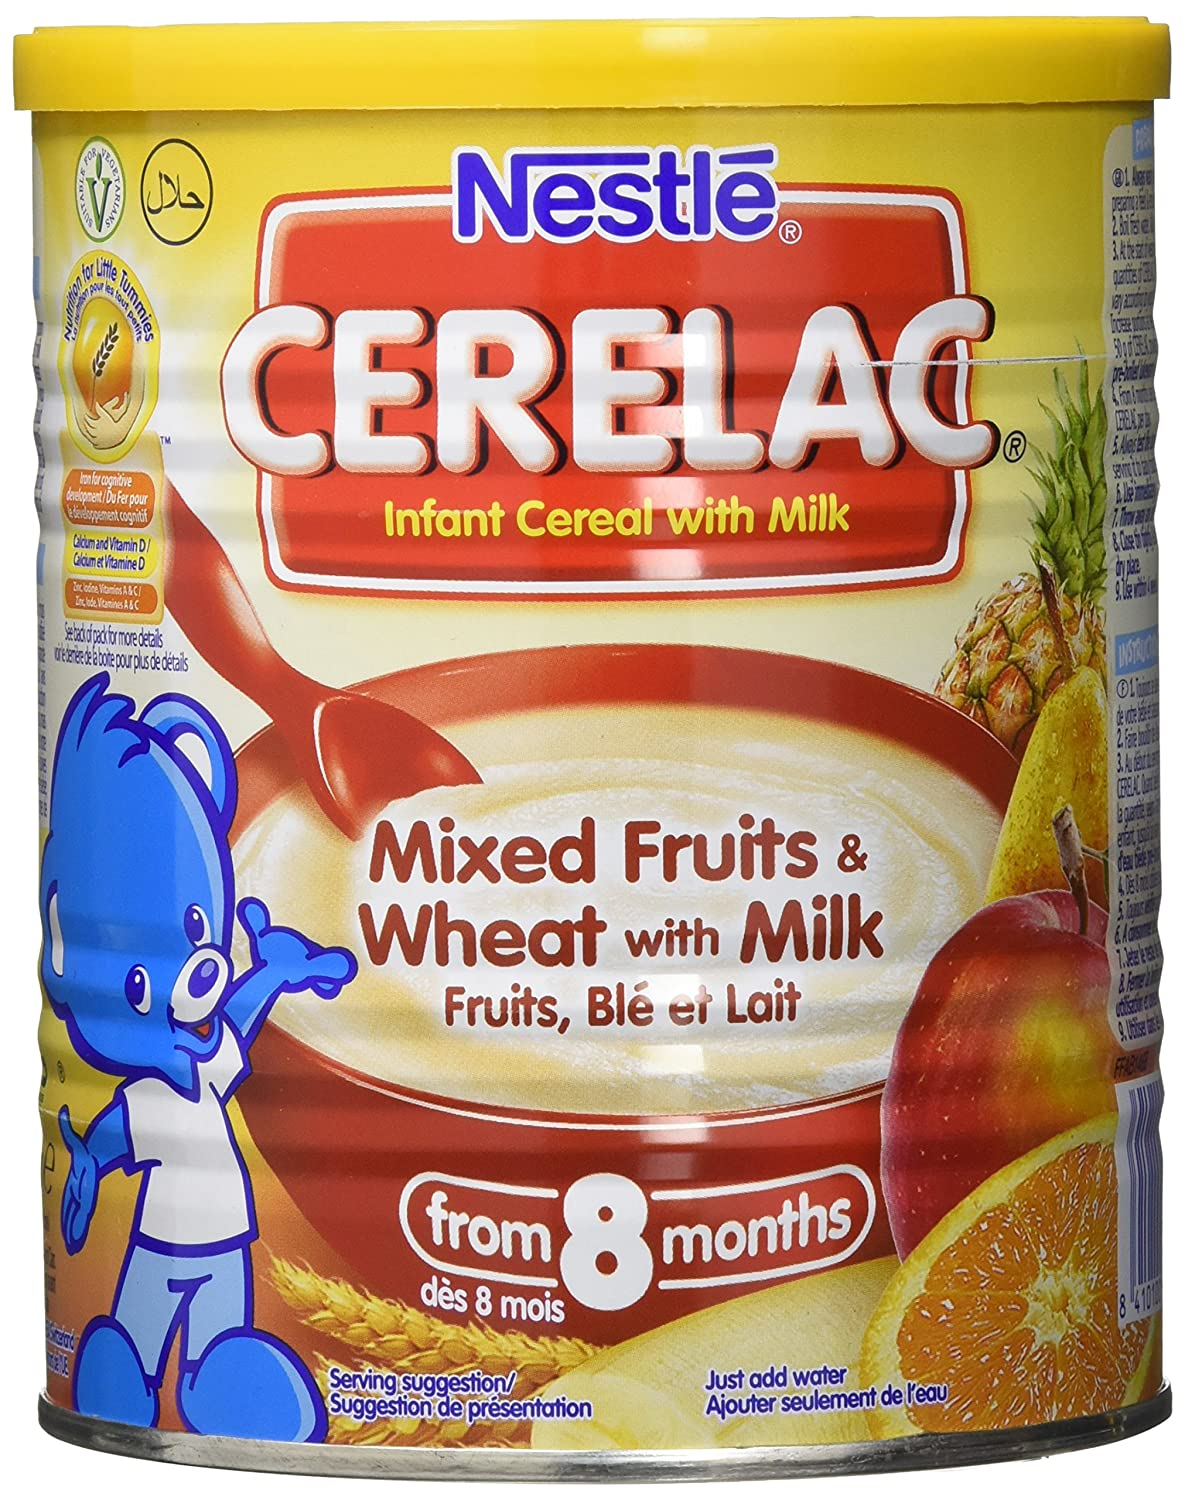 Nestle Cerelac, Mixed Fruits and Wheat with Milk, 14.1 Ounce Can (Pack of 24): Amazon.com: Grocery & Gourmet Food